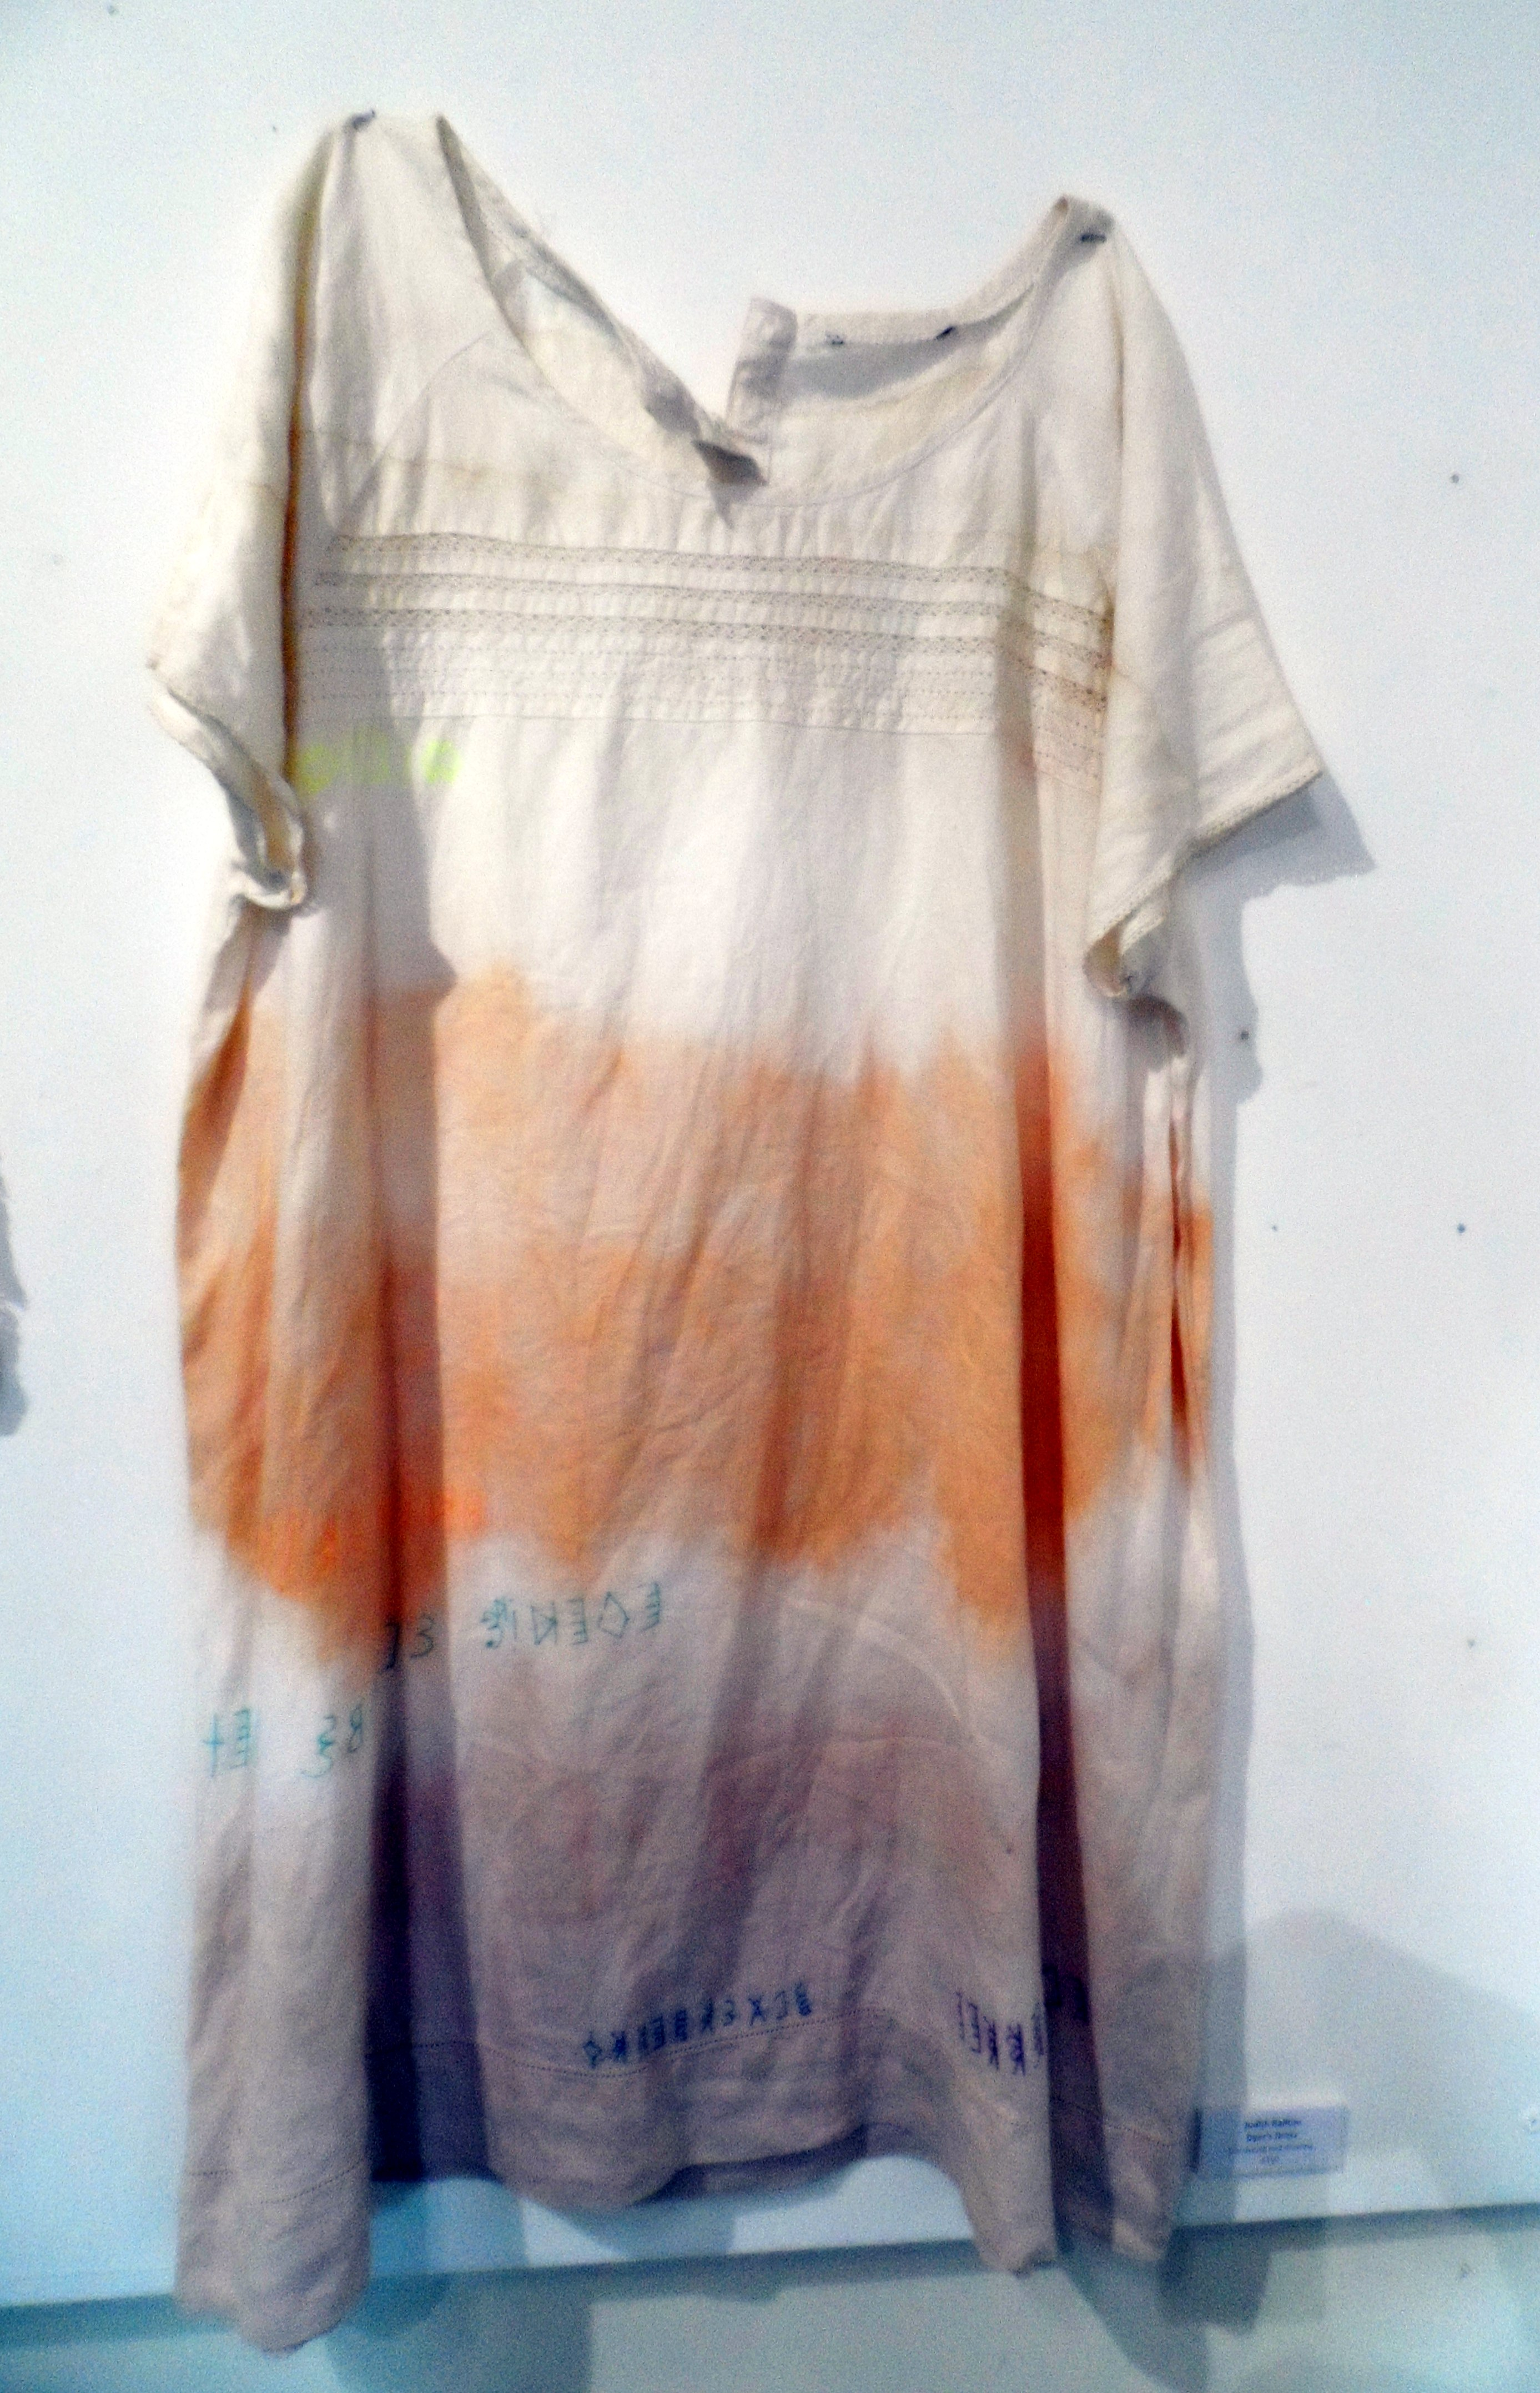 DYER's DRESS by Judith Railton, eco dyeing & printing, Re-View Textile Group, Frodsham 2019